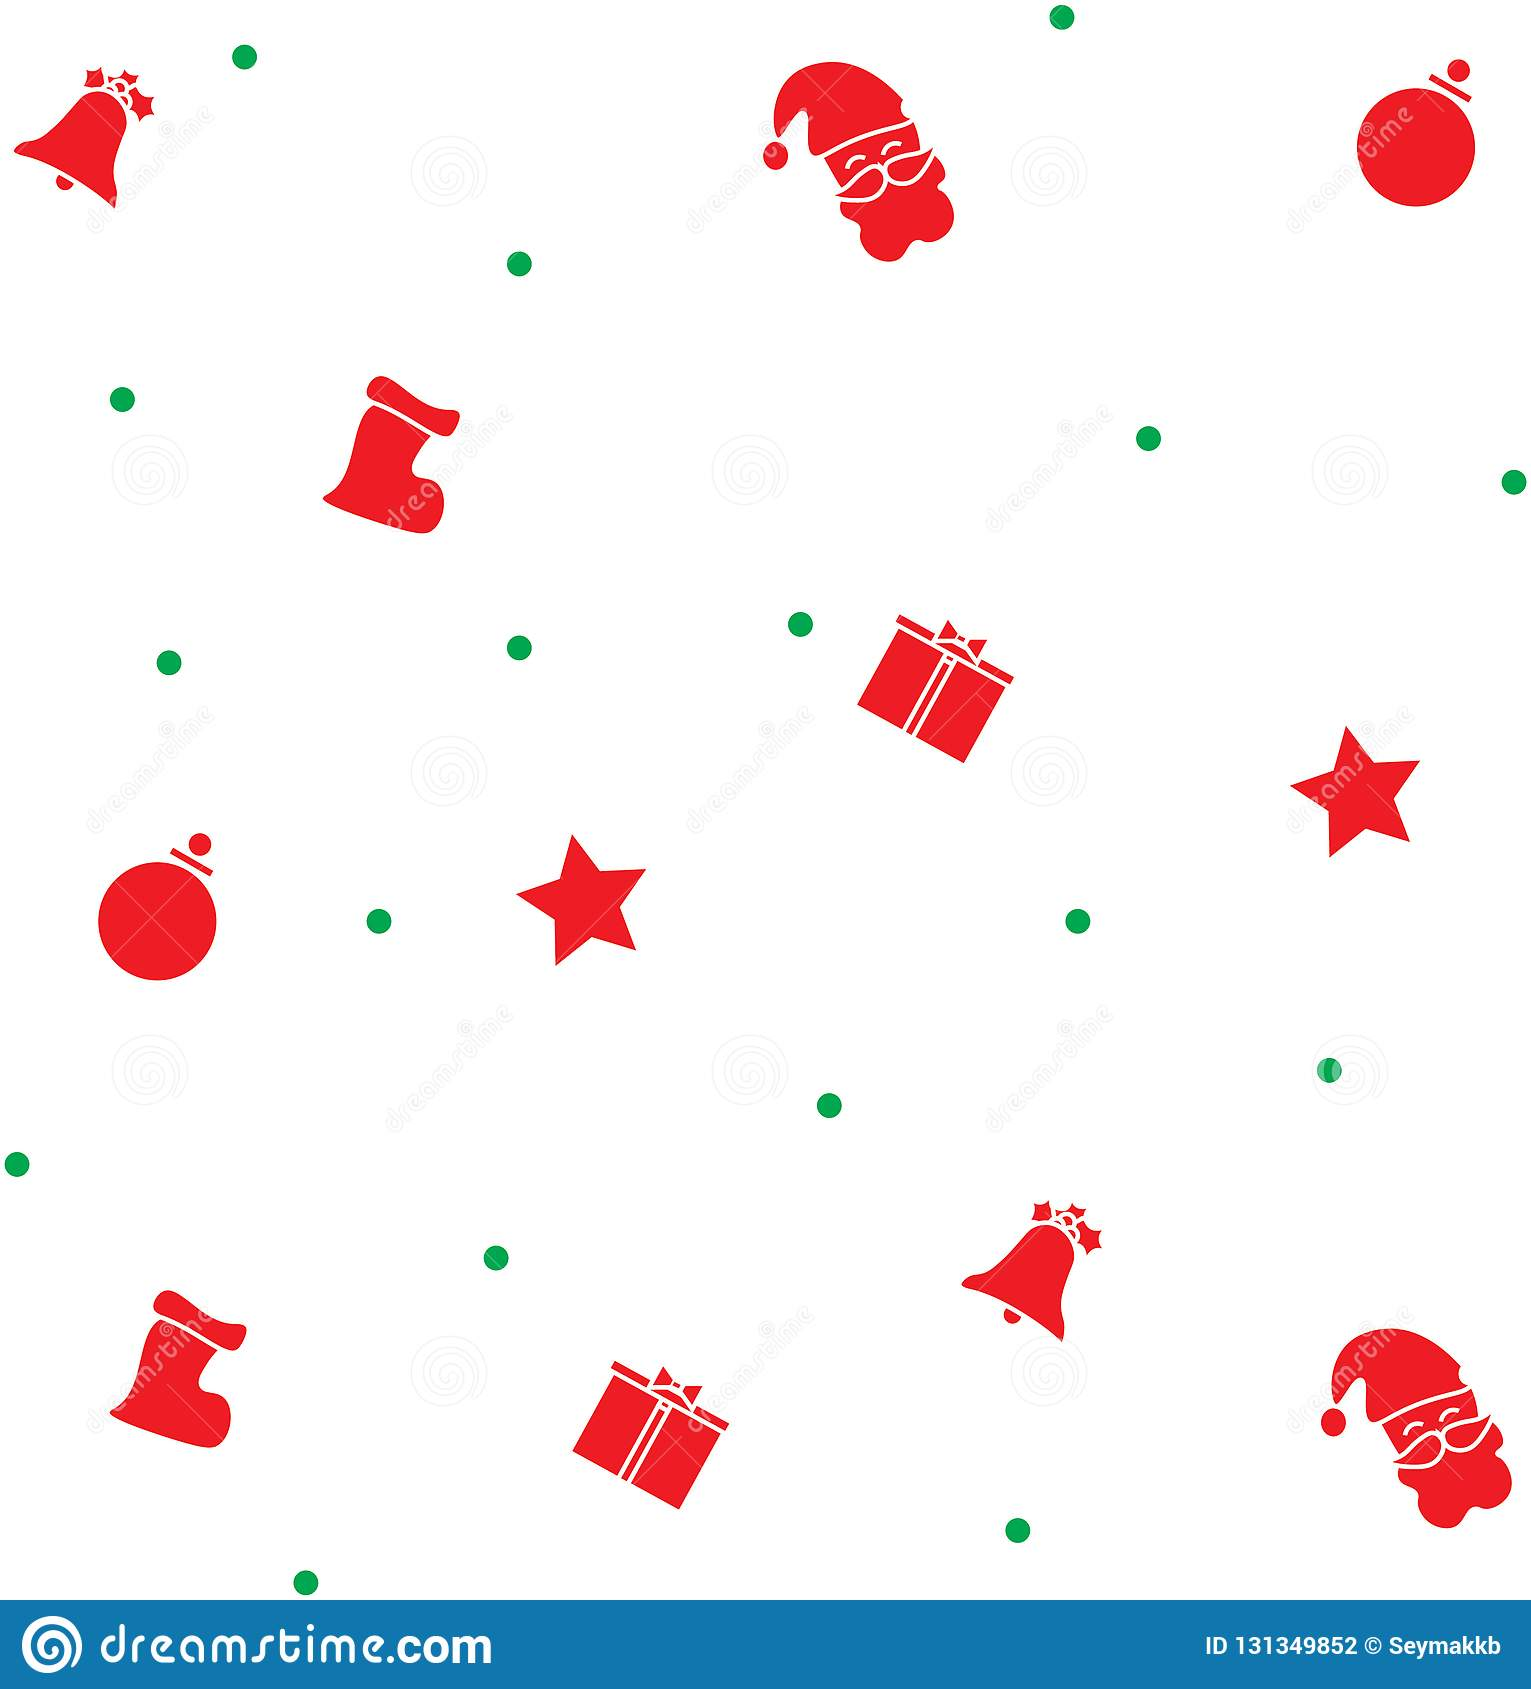 Red and Green Color Christmas Graphic